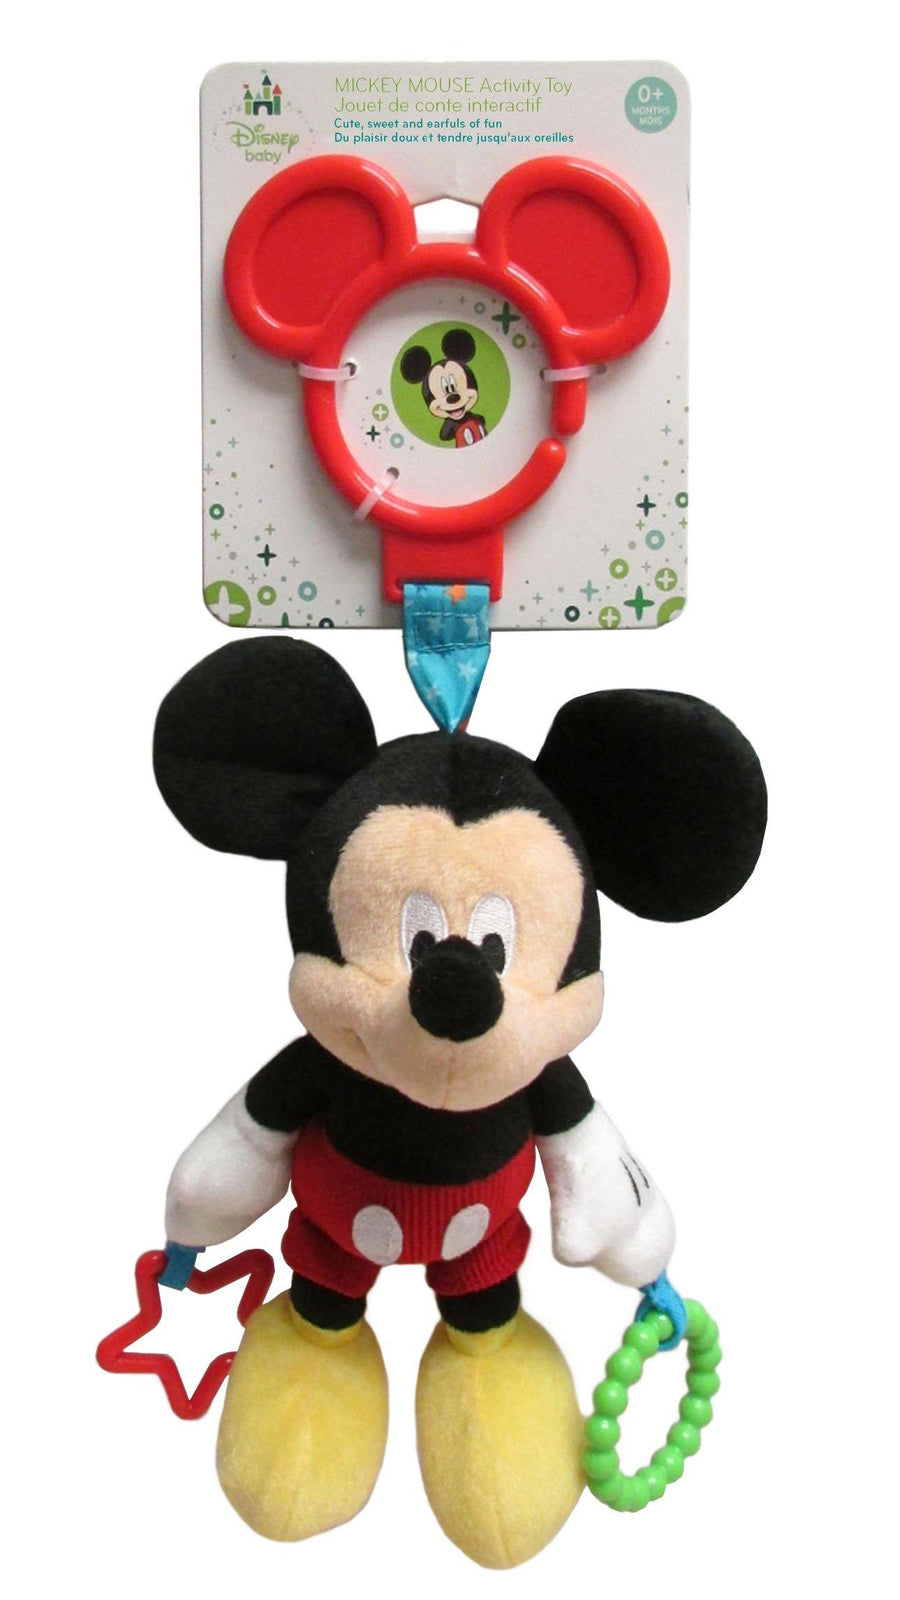 FOSTER MICKEY ACTIVITY TOY